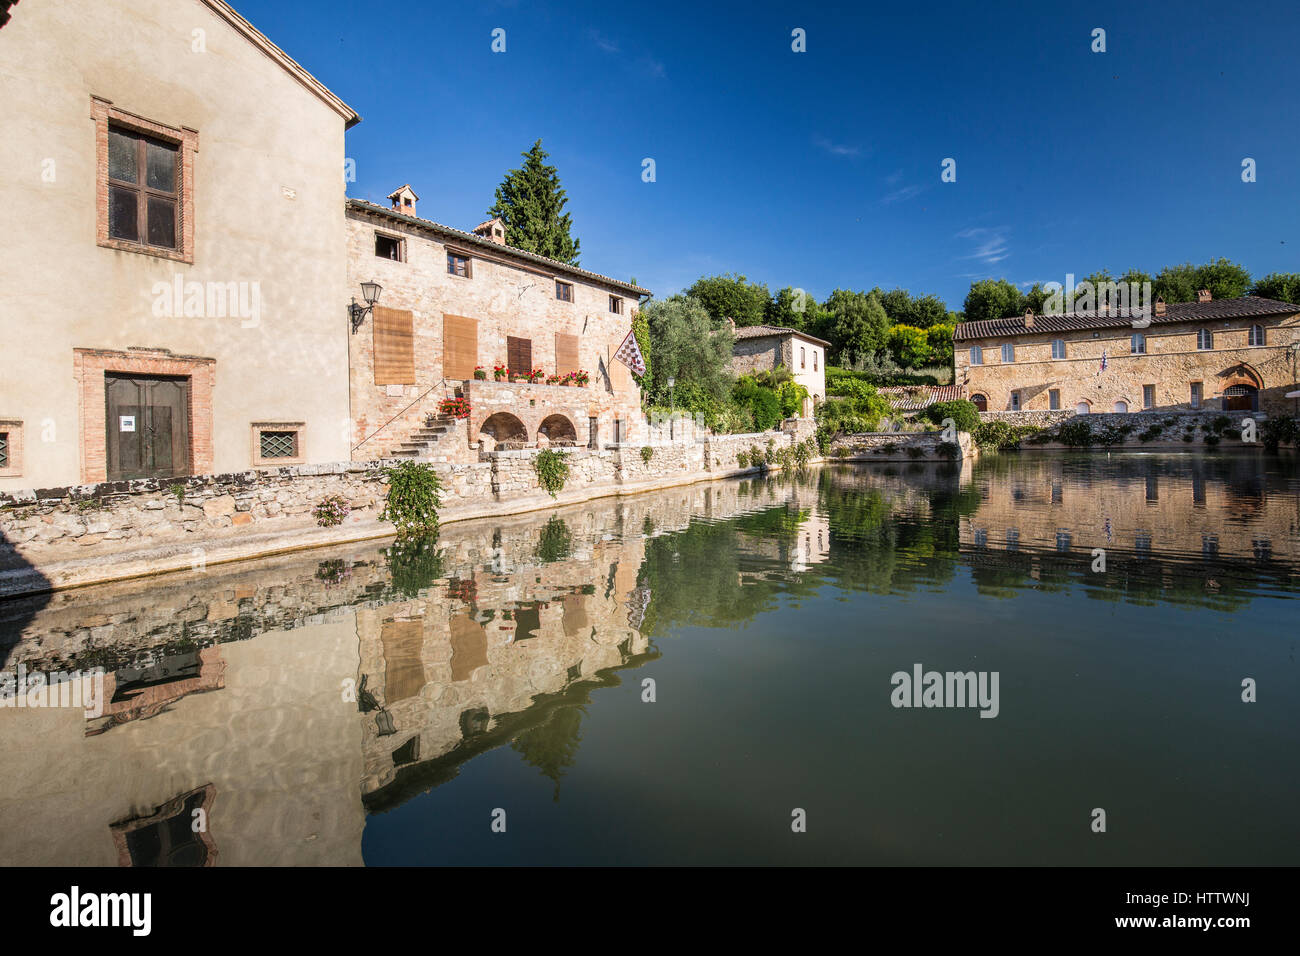 https://c8.alamy.com/comp/HTTWNJ/the-town-of-bagno-vignoni-in-orcia-valley-siena-district-tuscany-italy-HTTWNJ.jpg